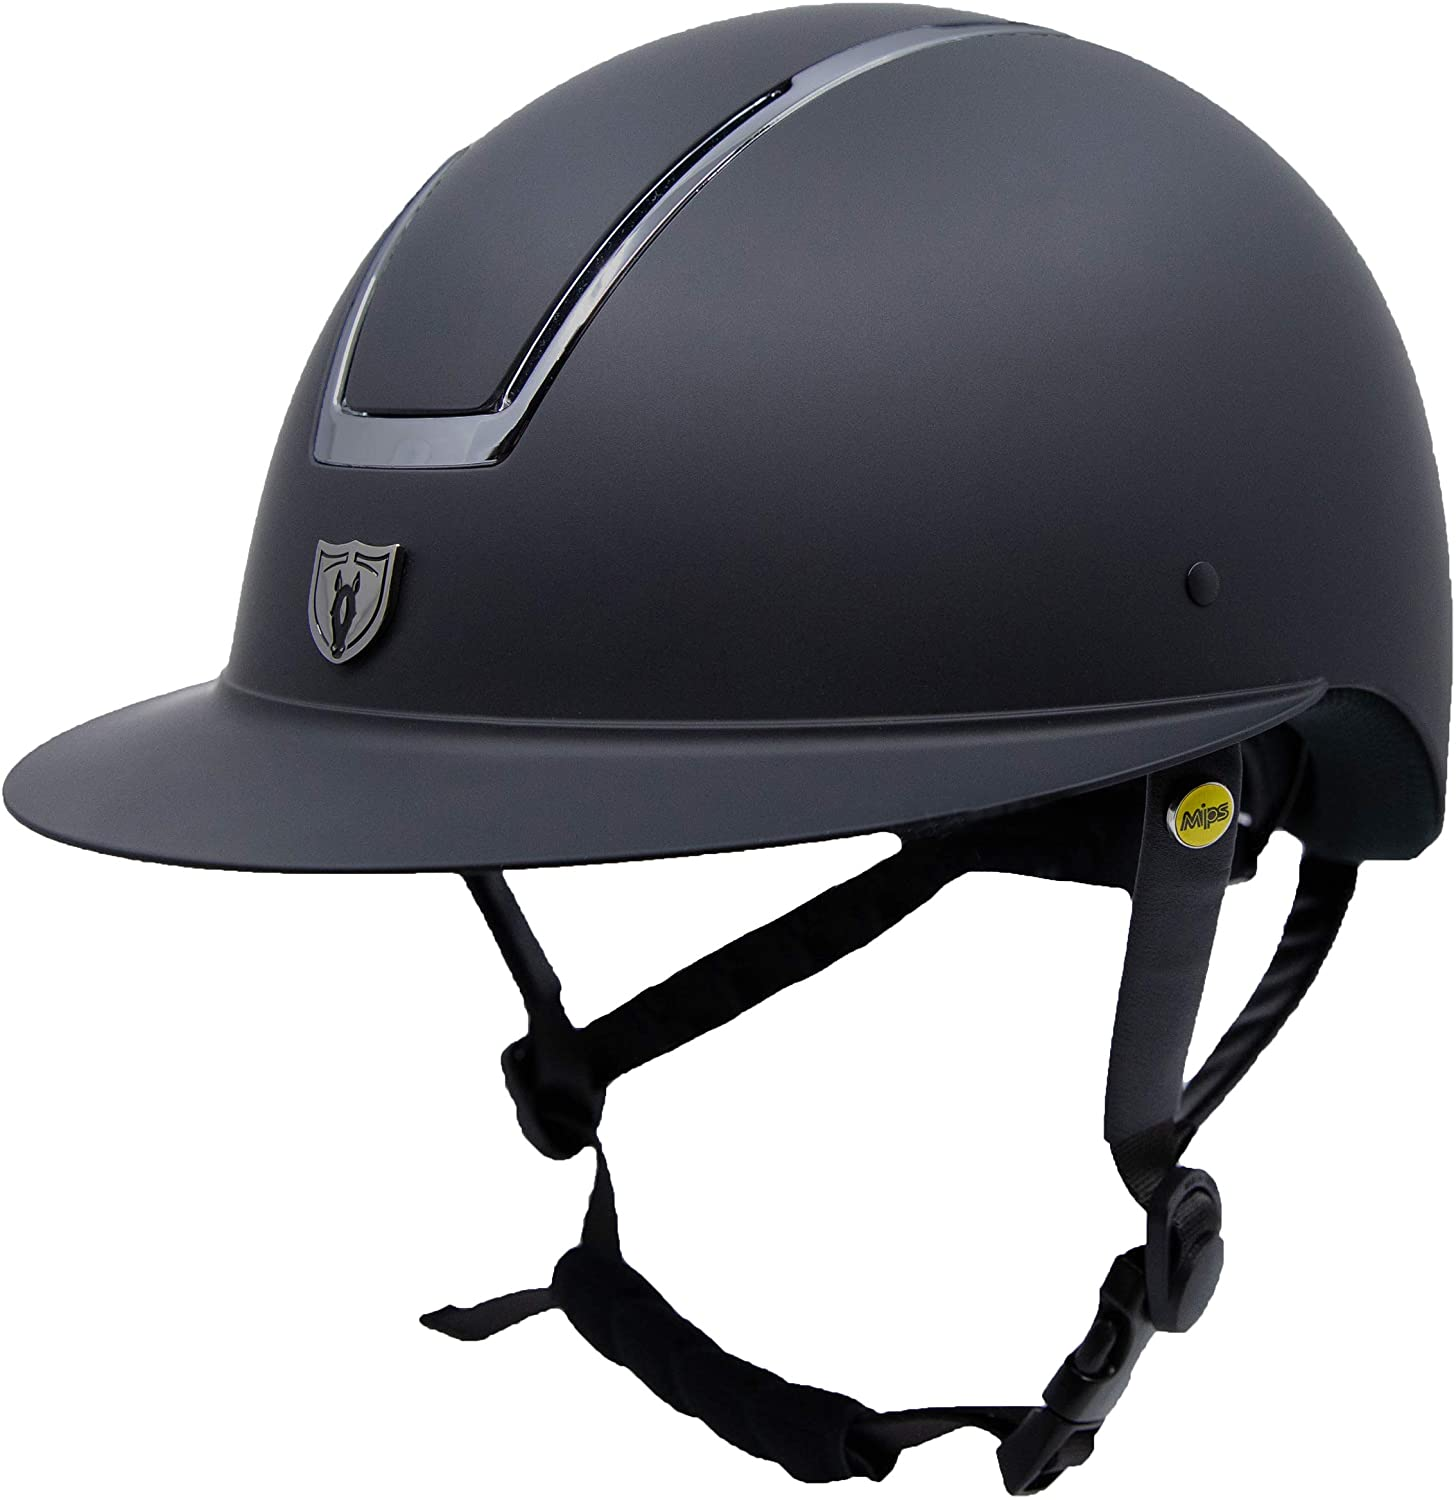 TIPPERARY EQUESTRIAN Horse Riding Helmet - Windsor - English Style Protective Horseback Riding Apparel - Customizable Fit and Cooling Ventilation - Black Chrome - Wide Brim - L